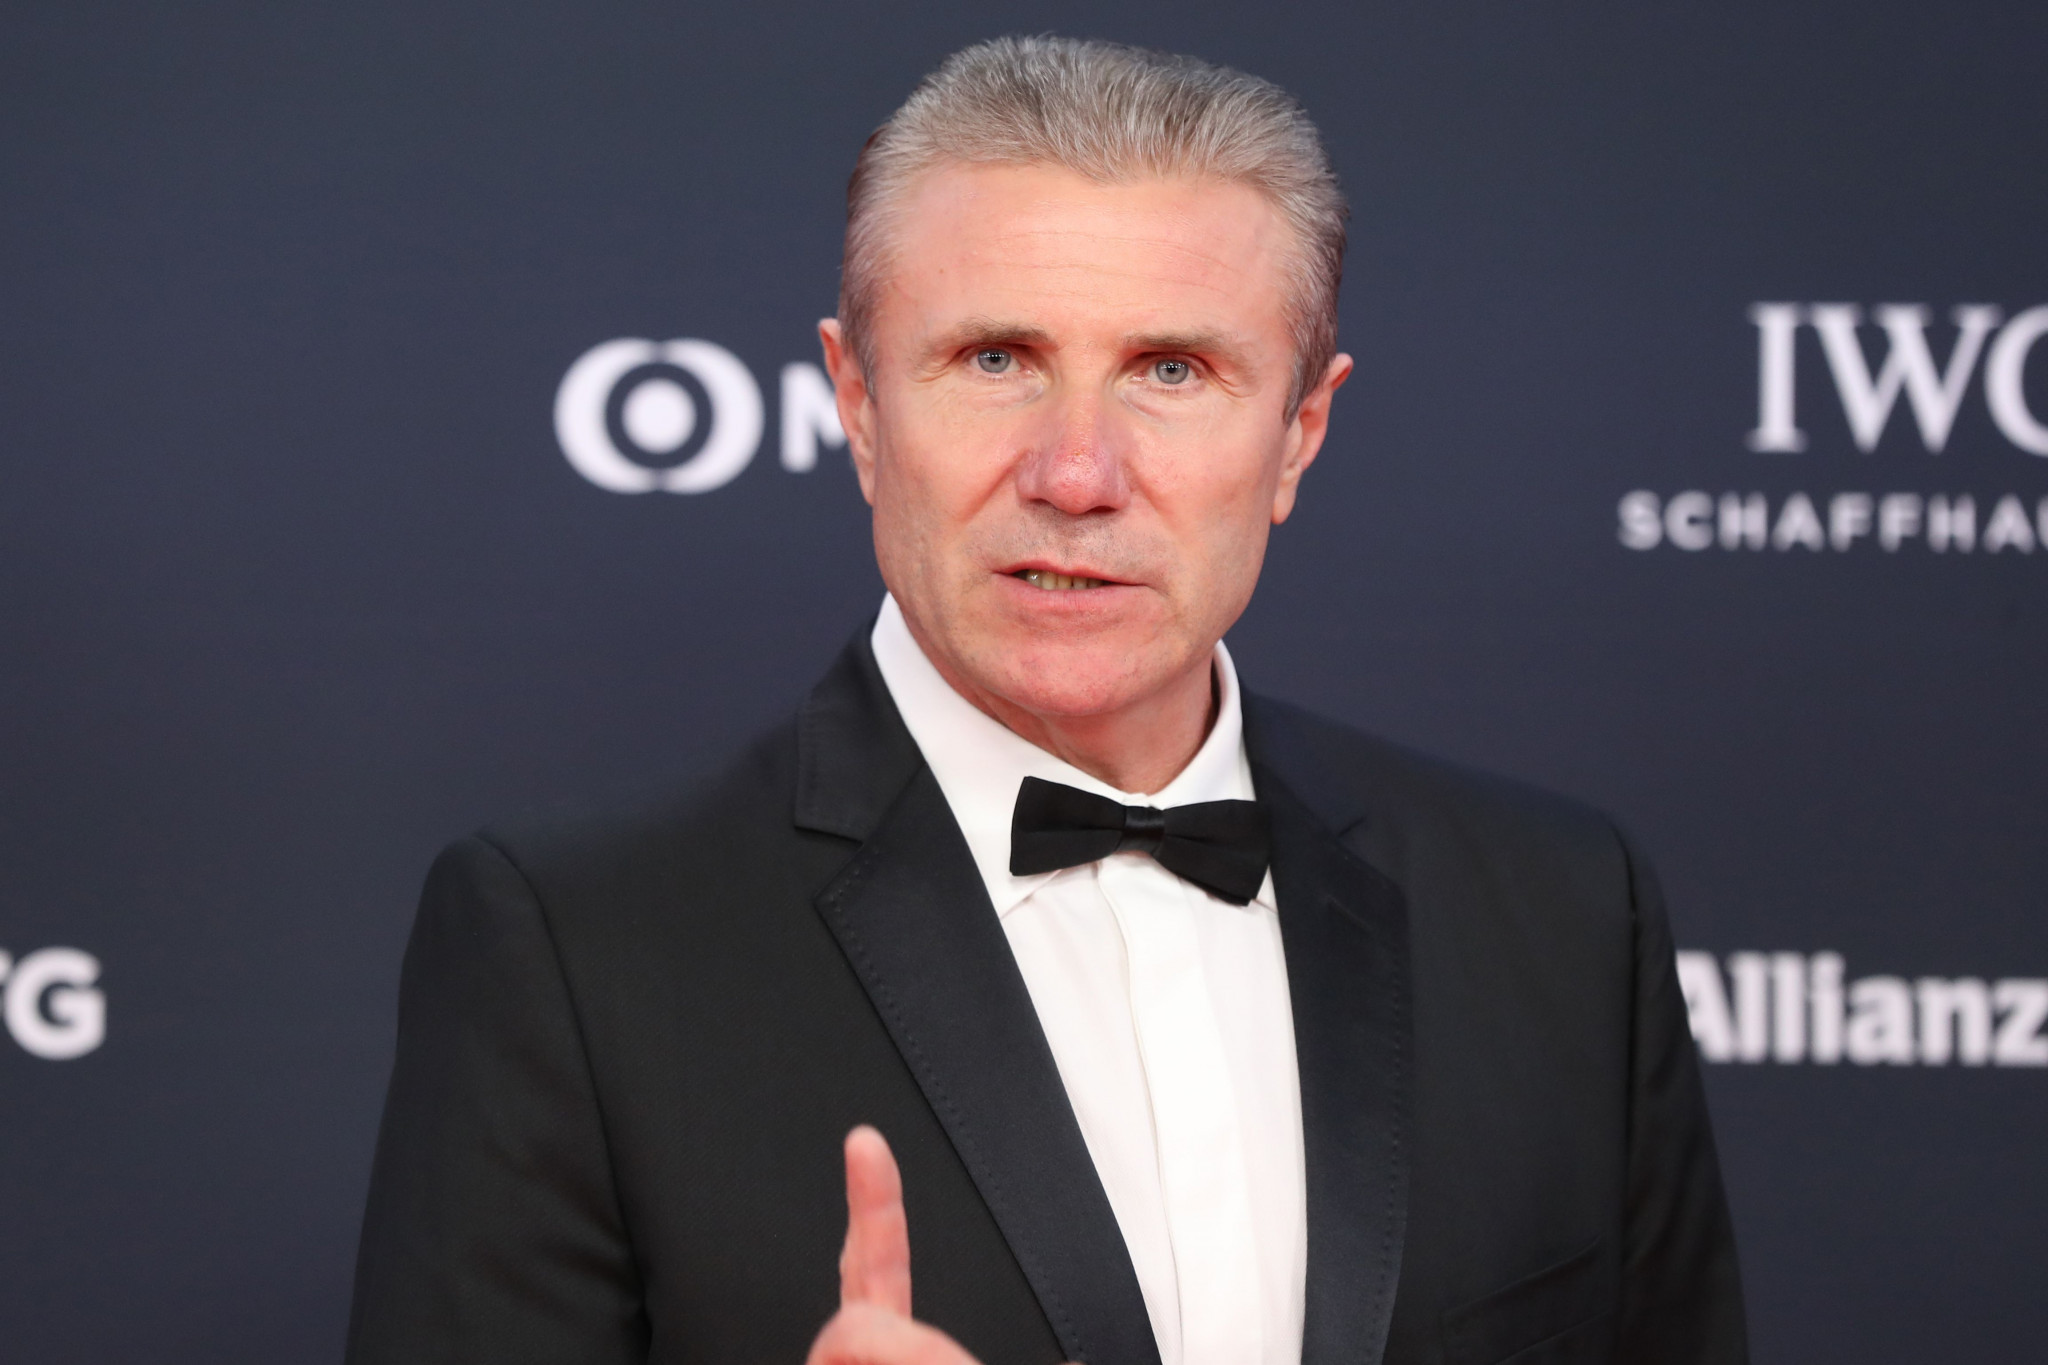 Bubka cleared of wrongdoing by AIU in relation to payments made to disgraced former IAAF treasurer